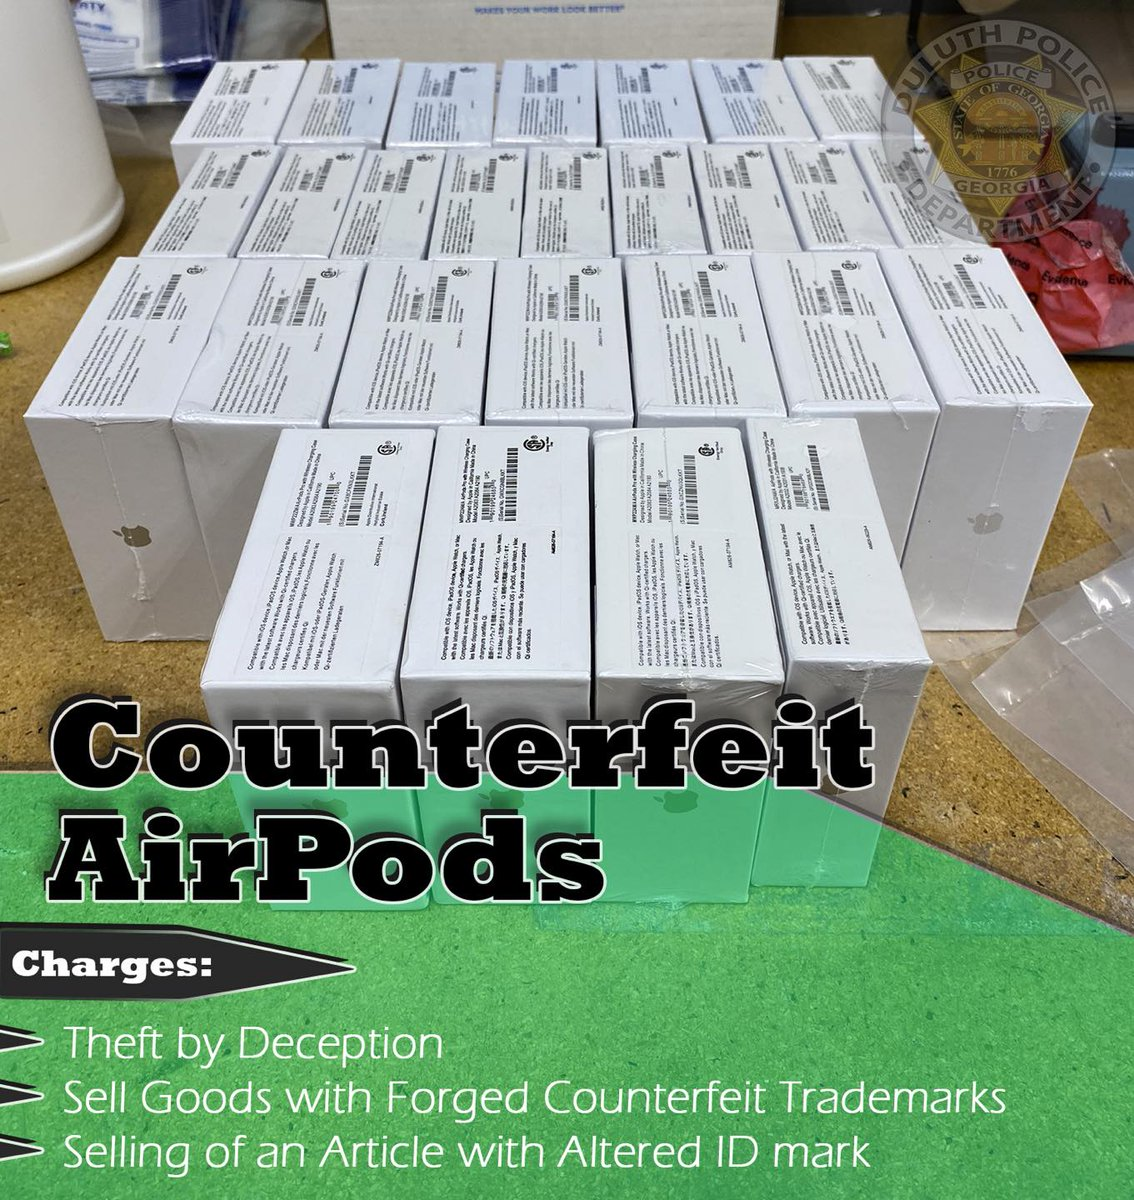 Police offer tips after a suspect is arrested for selling counterfeit AirPods https://t.co/tiGe7nWoSD #cbs46 https://t.co/udqc9VyyTC